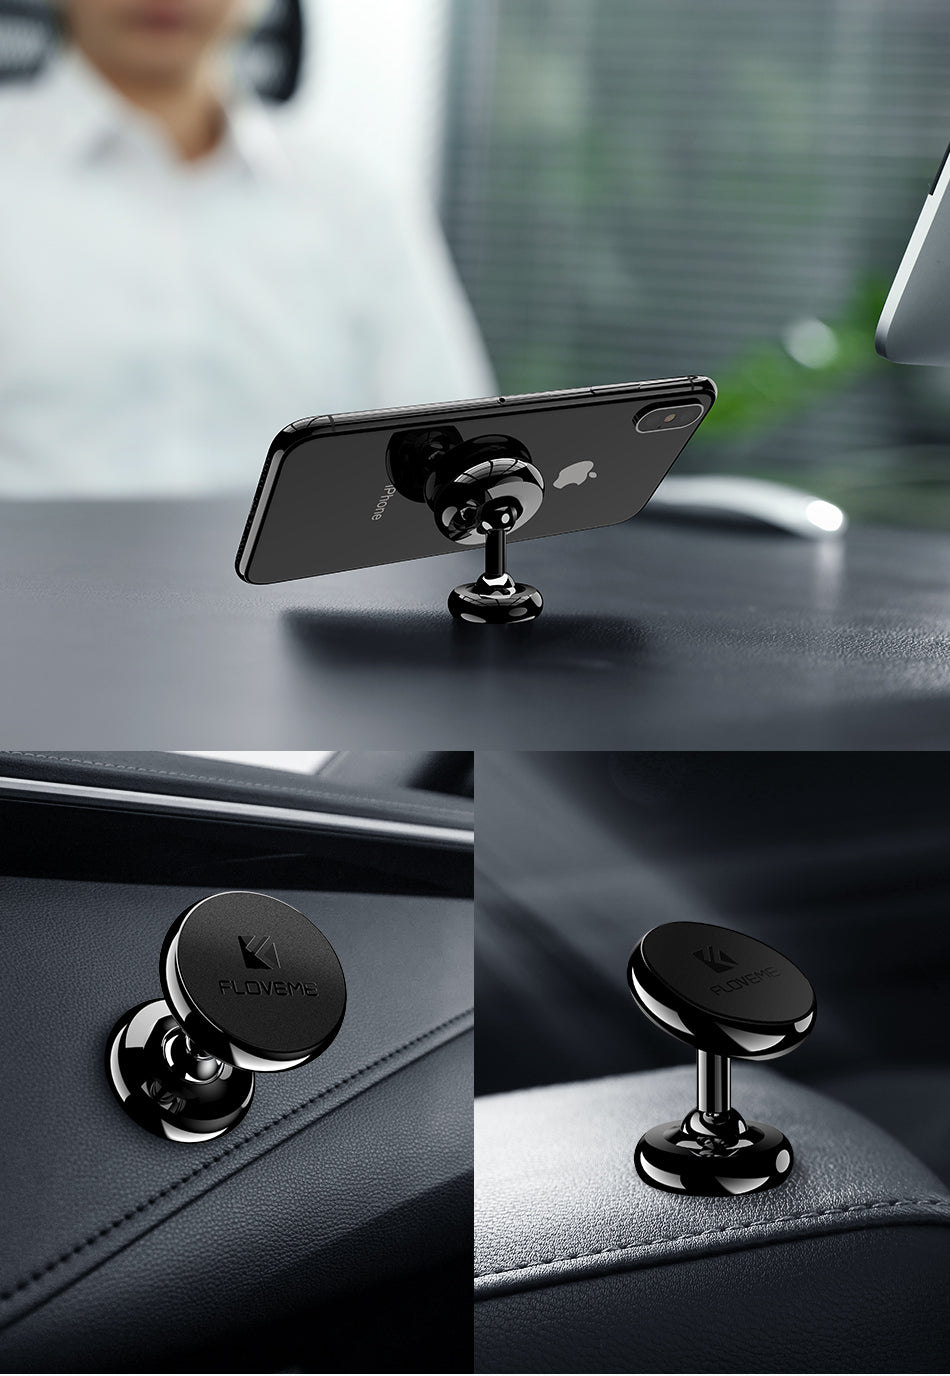 FLOVEME Magnetic Car phone holder for iPhone 7 8 XR Mount phone holder Stand for Huawei P30 P20 celular para carro for Samsung - FLOVEME